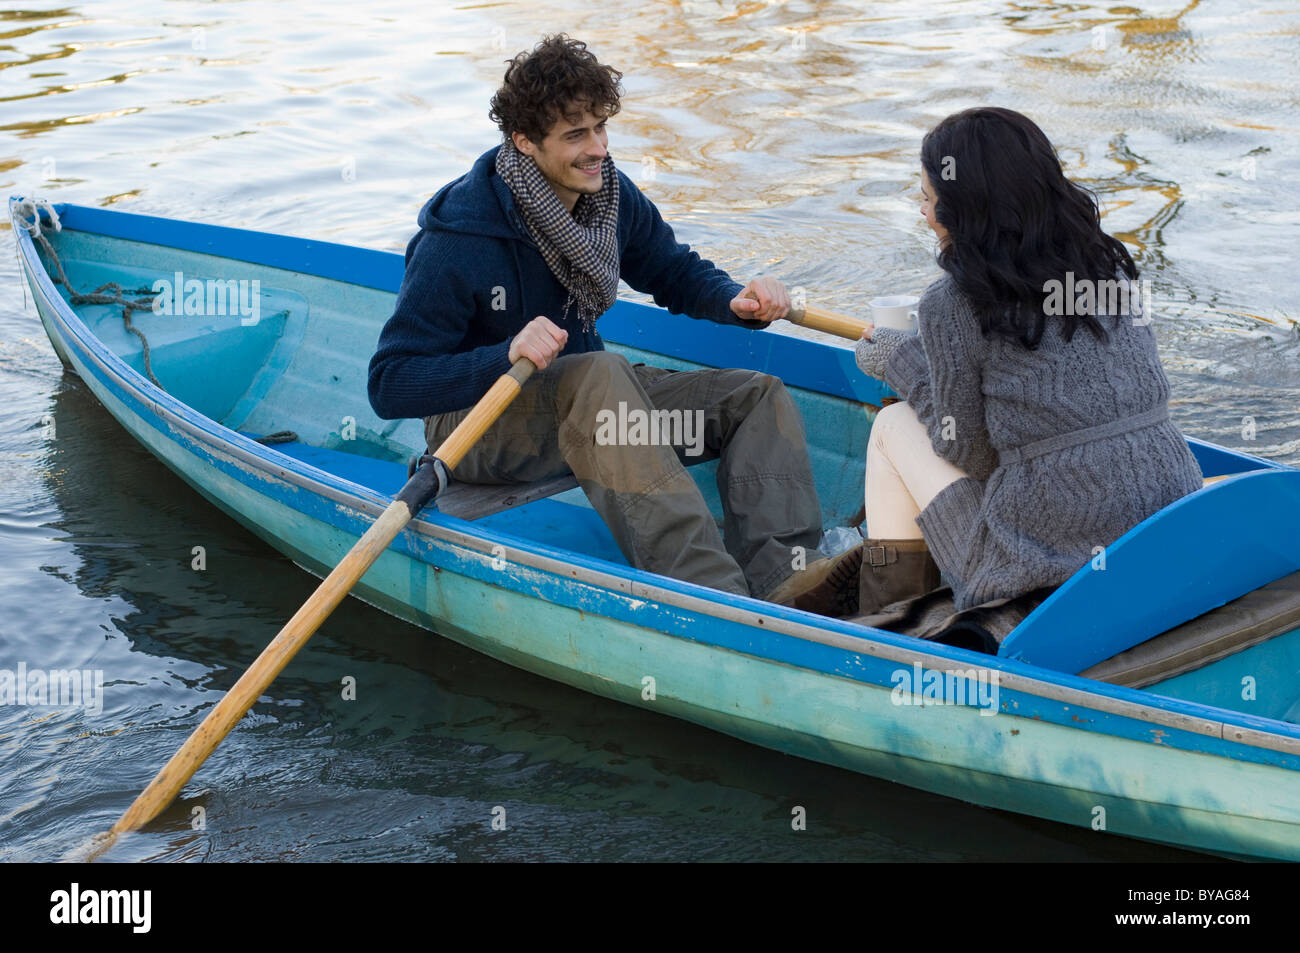 Couple in rowing boat - Stock Image